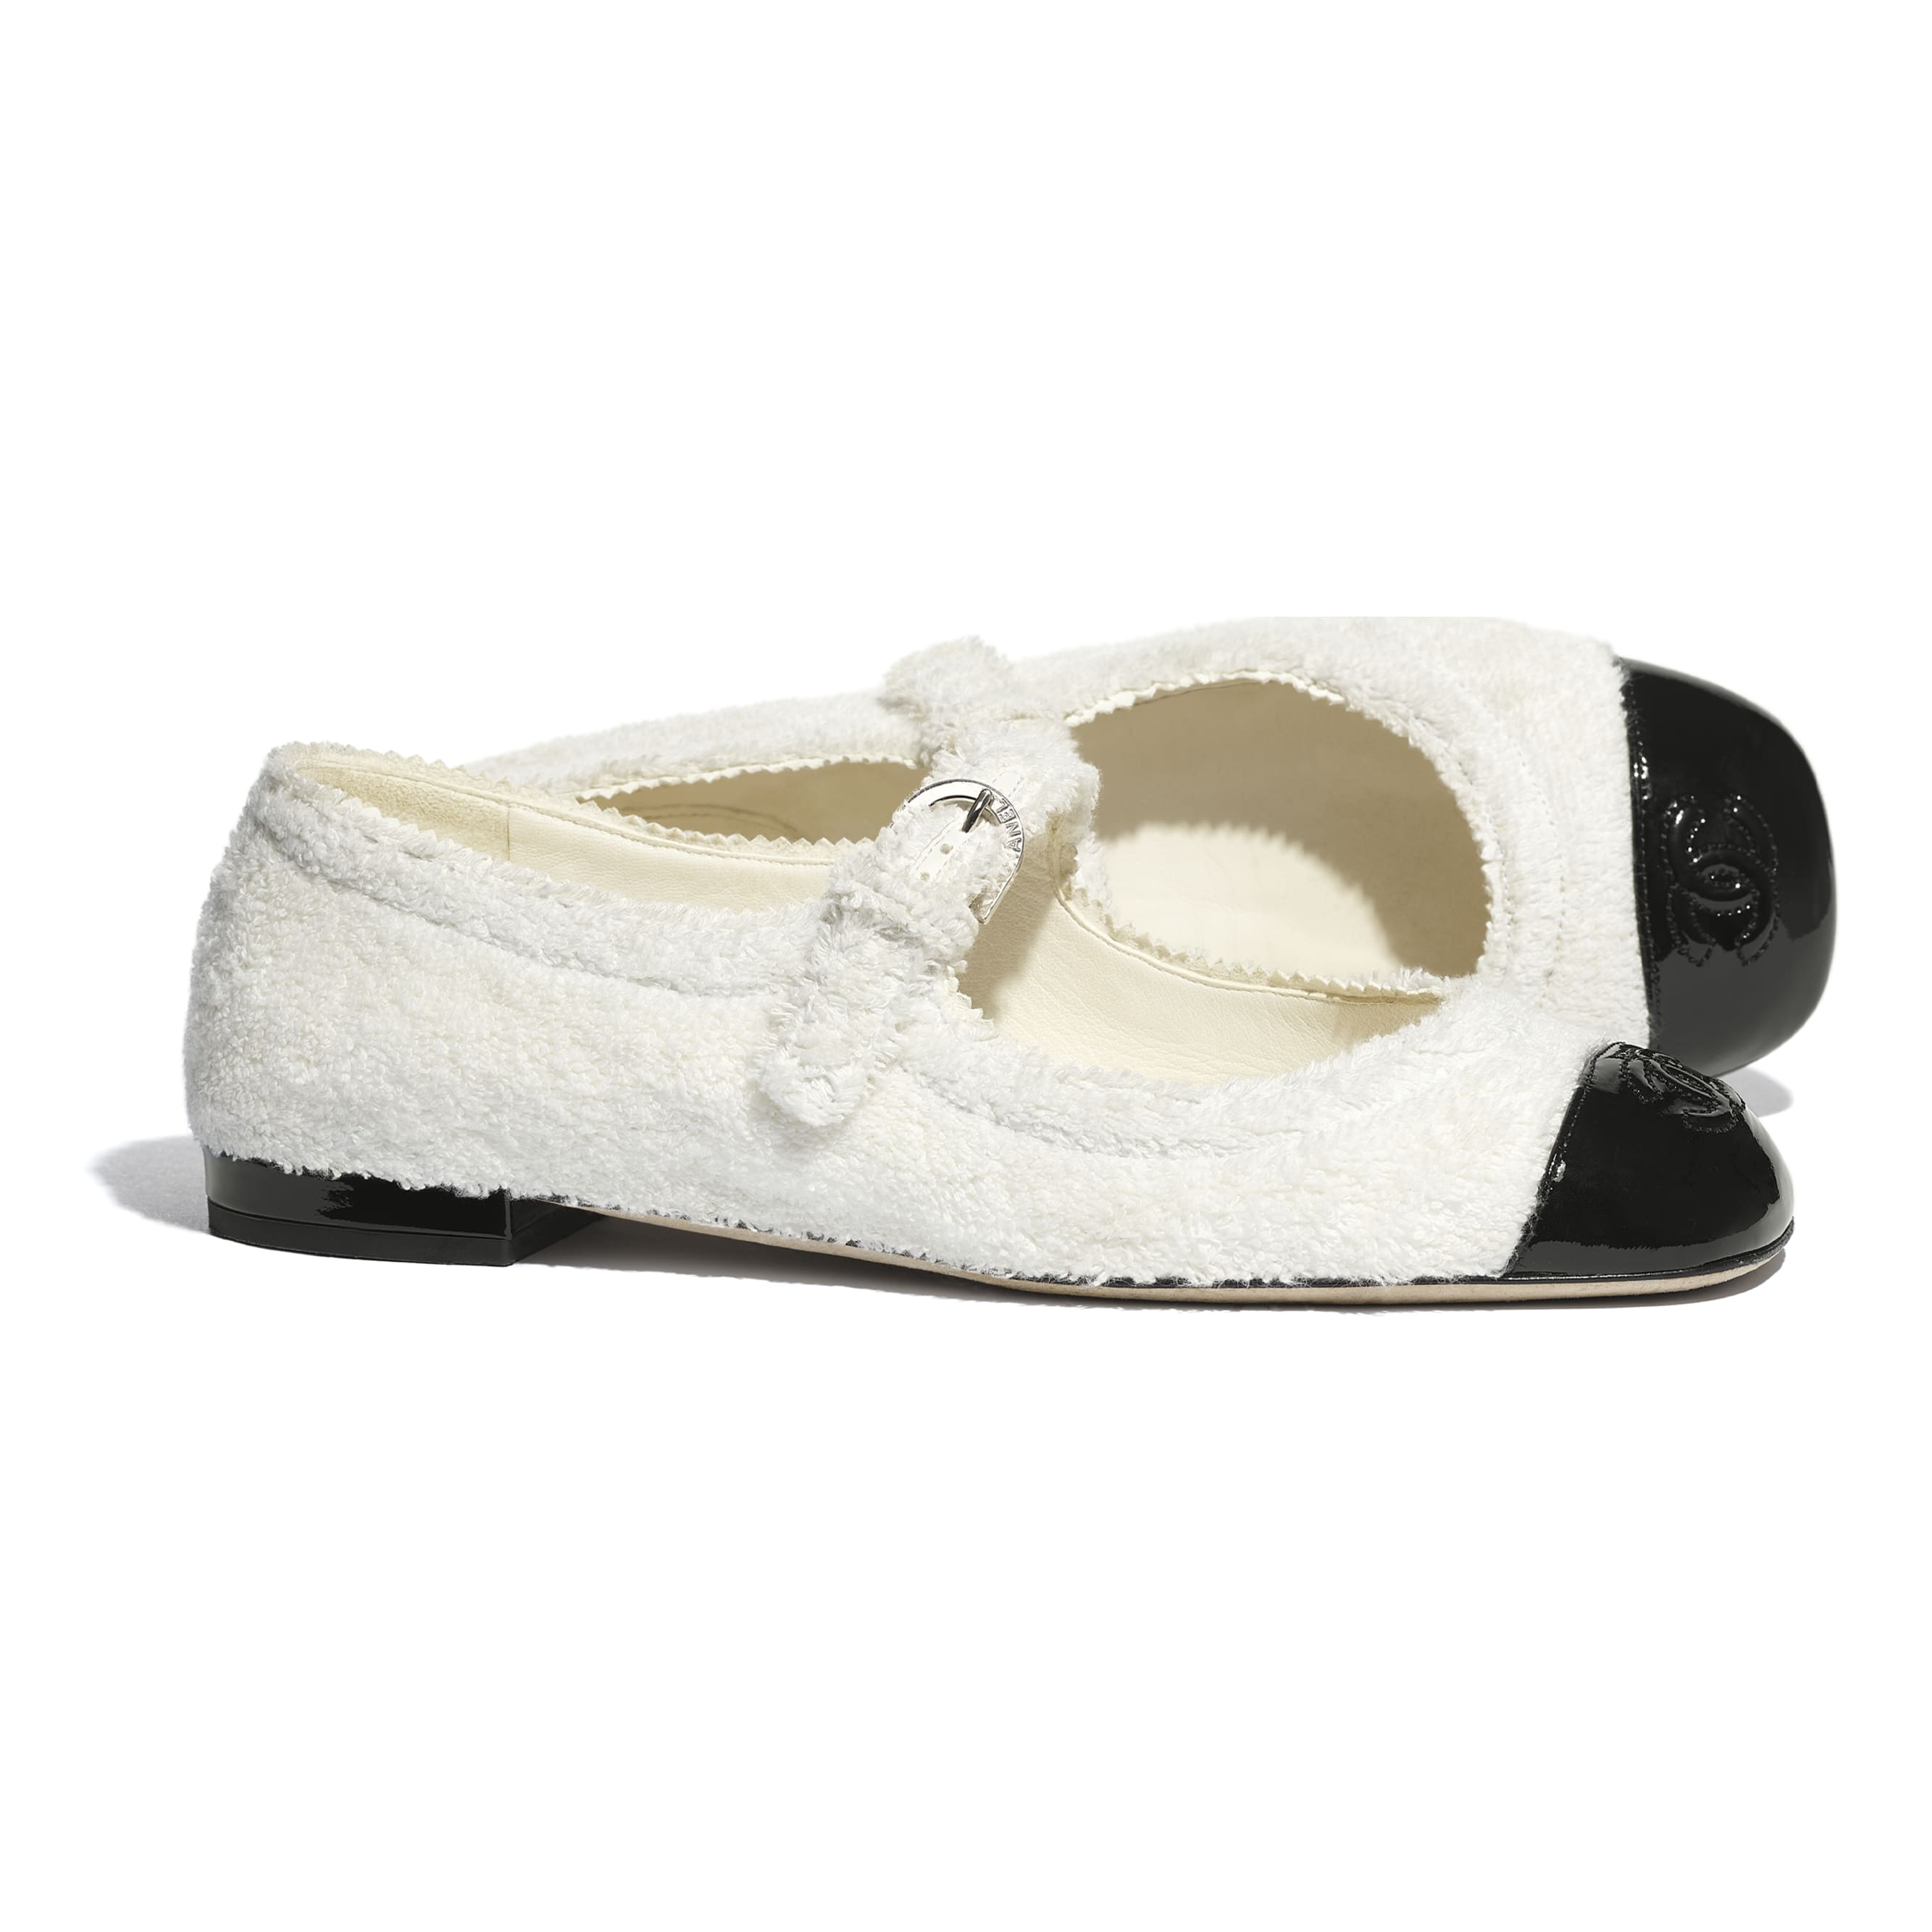 Mary Janes  - White & Black - Fabric & Patent Lambskin - CHANEL - Extra view - see standard sized version